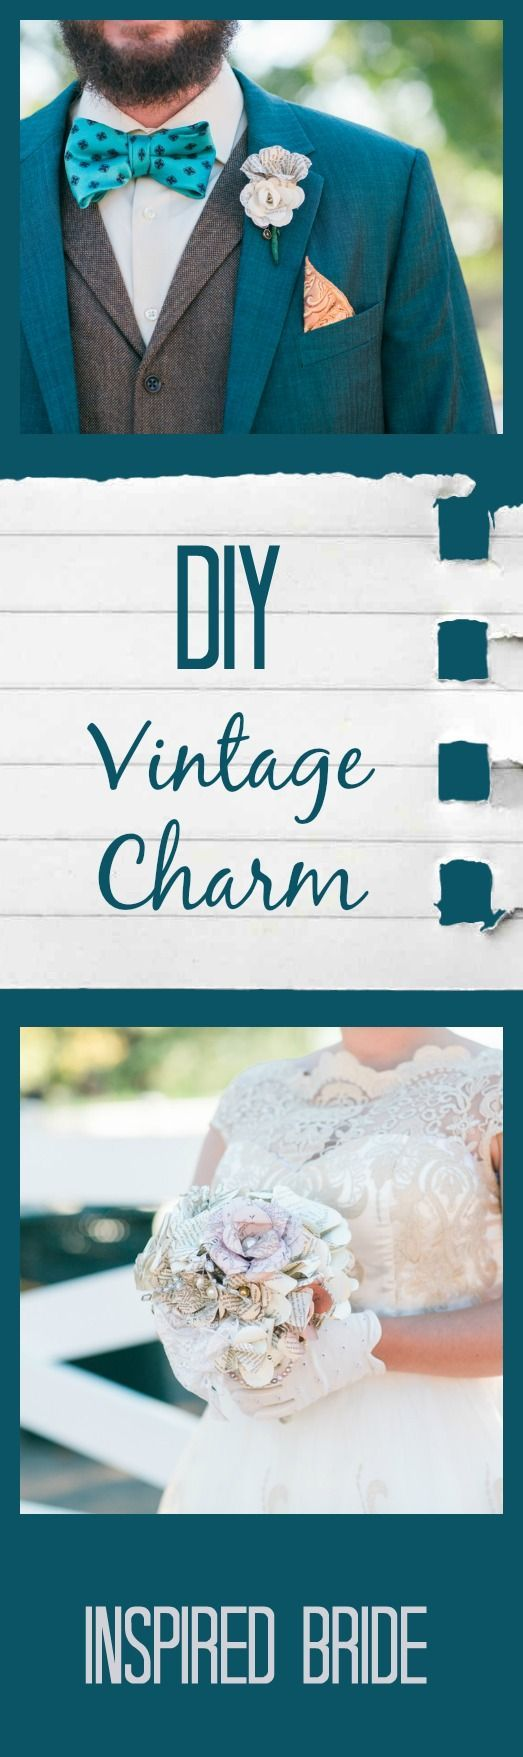 431 best Wedding Theme Ideas images on Pinterest | Nontraditional ...